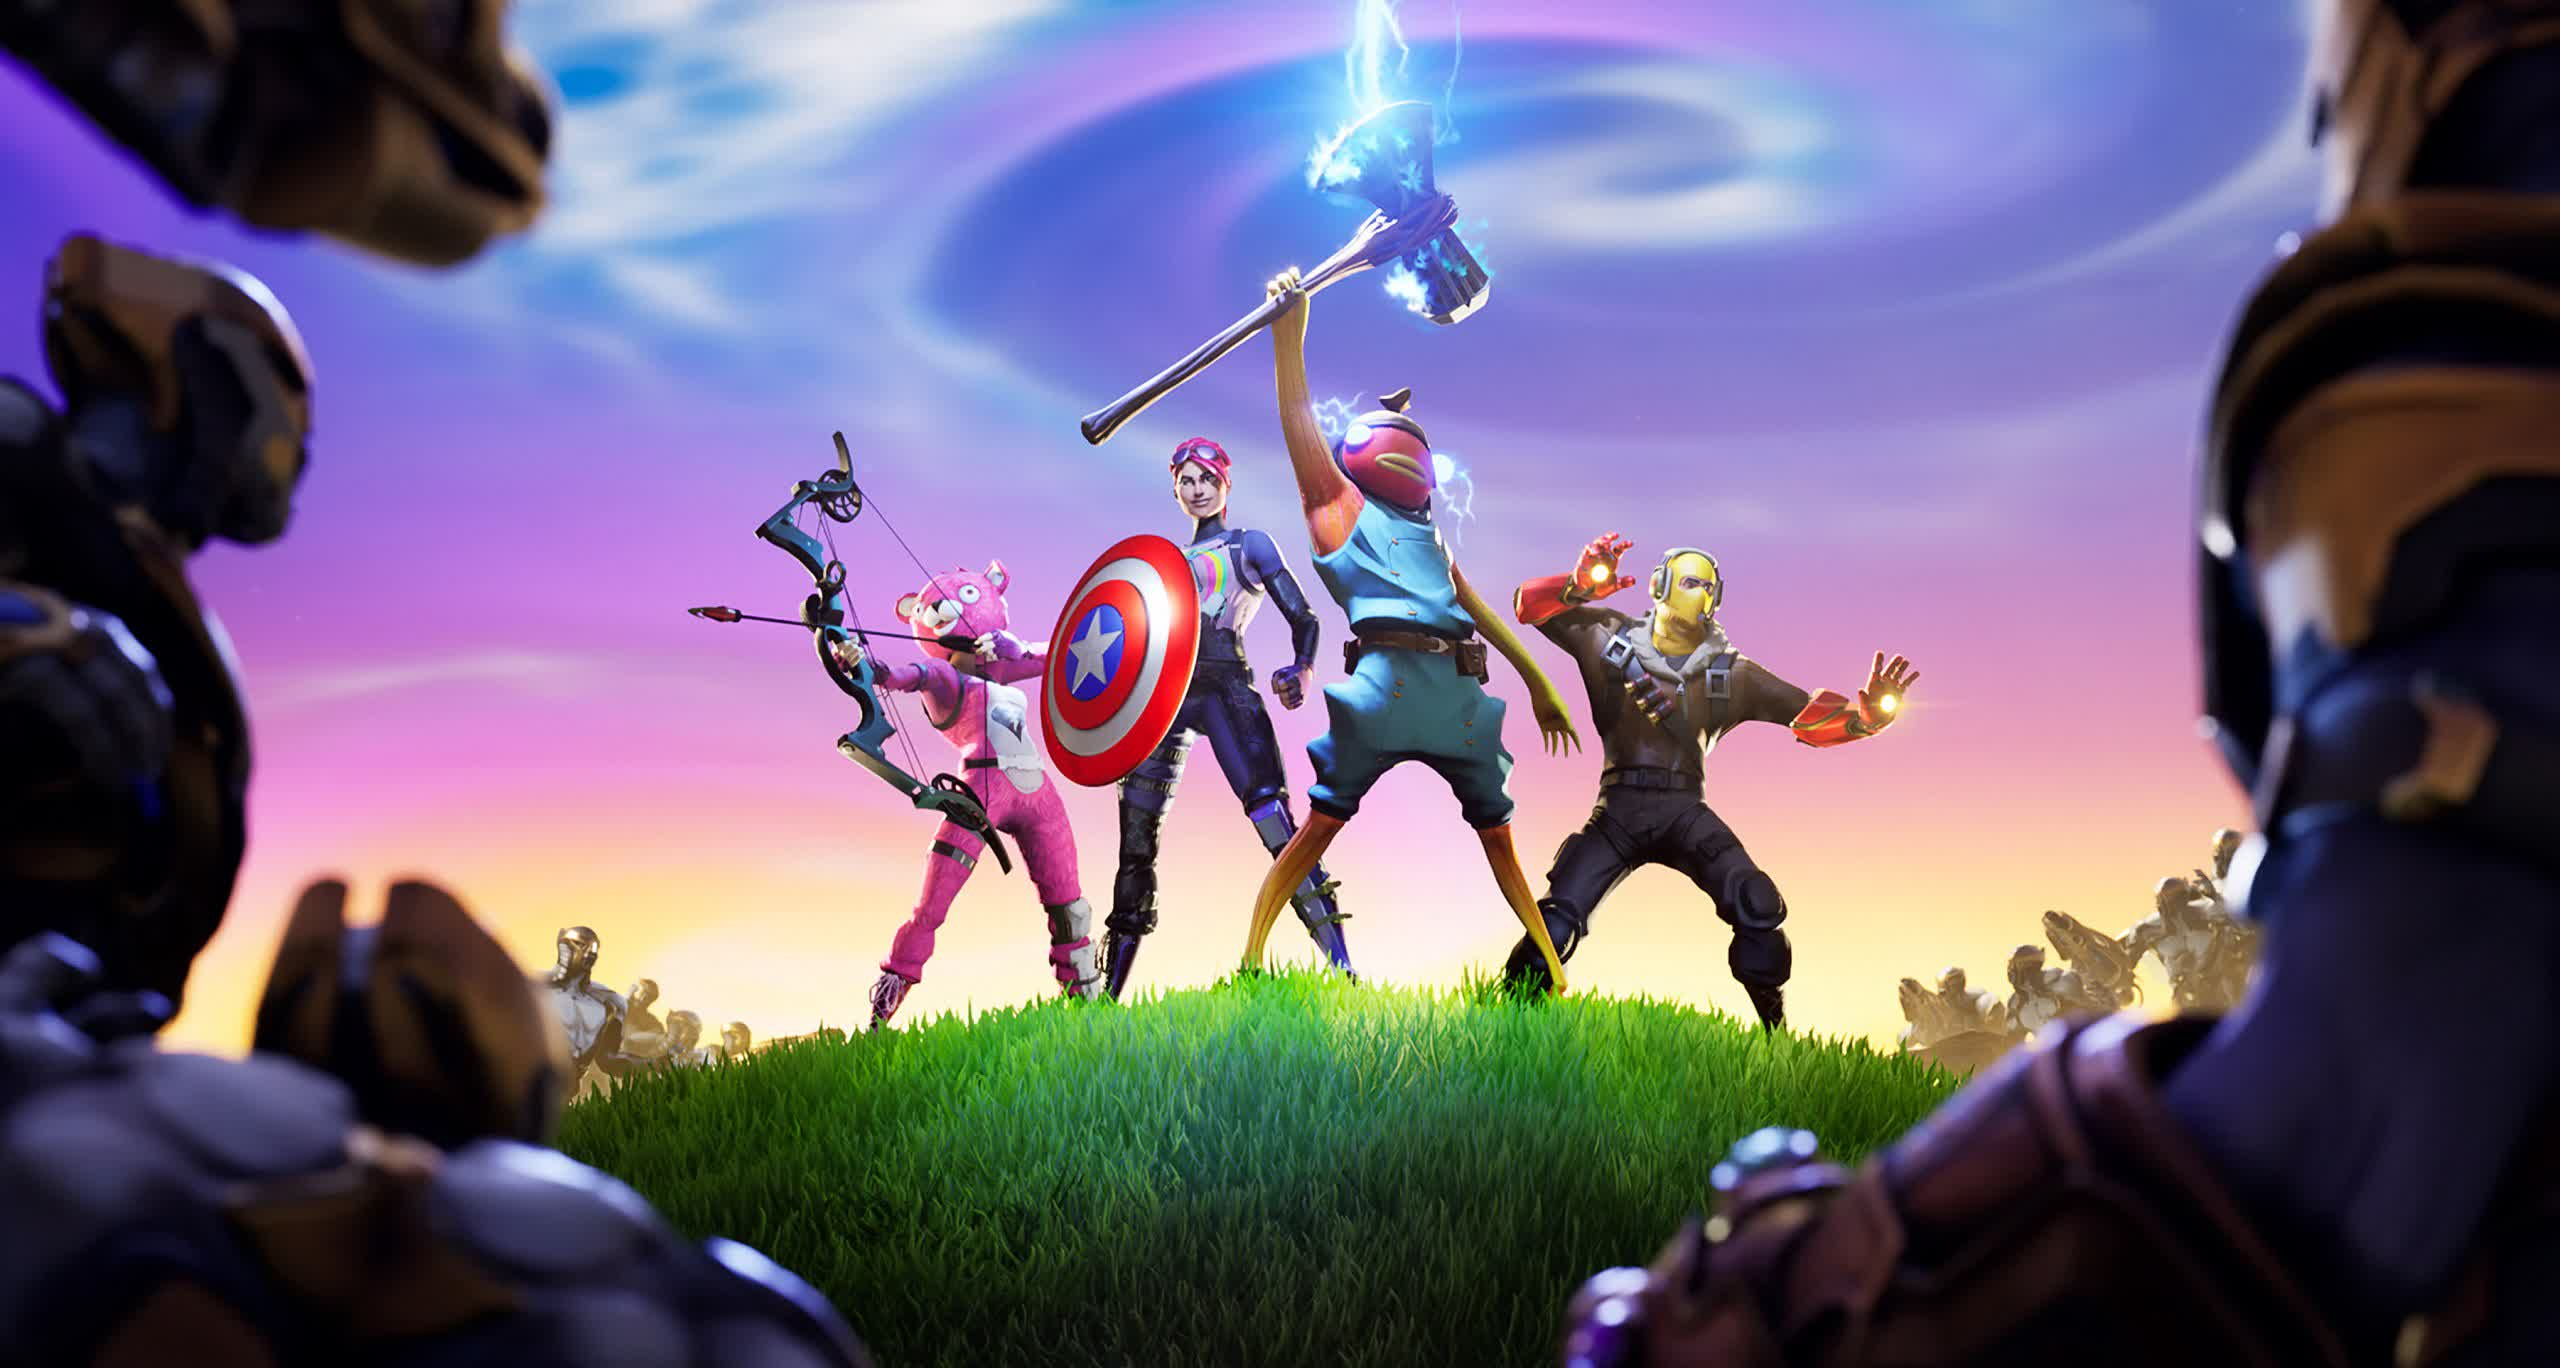 Epic Games reportedly in talks to produce a Fortnite movie